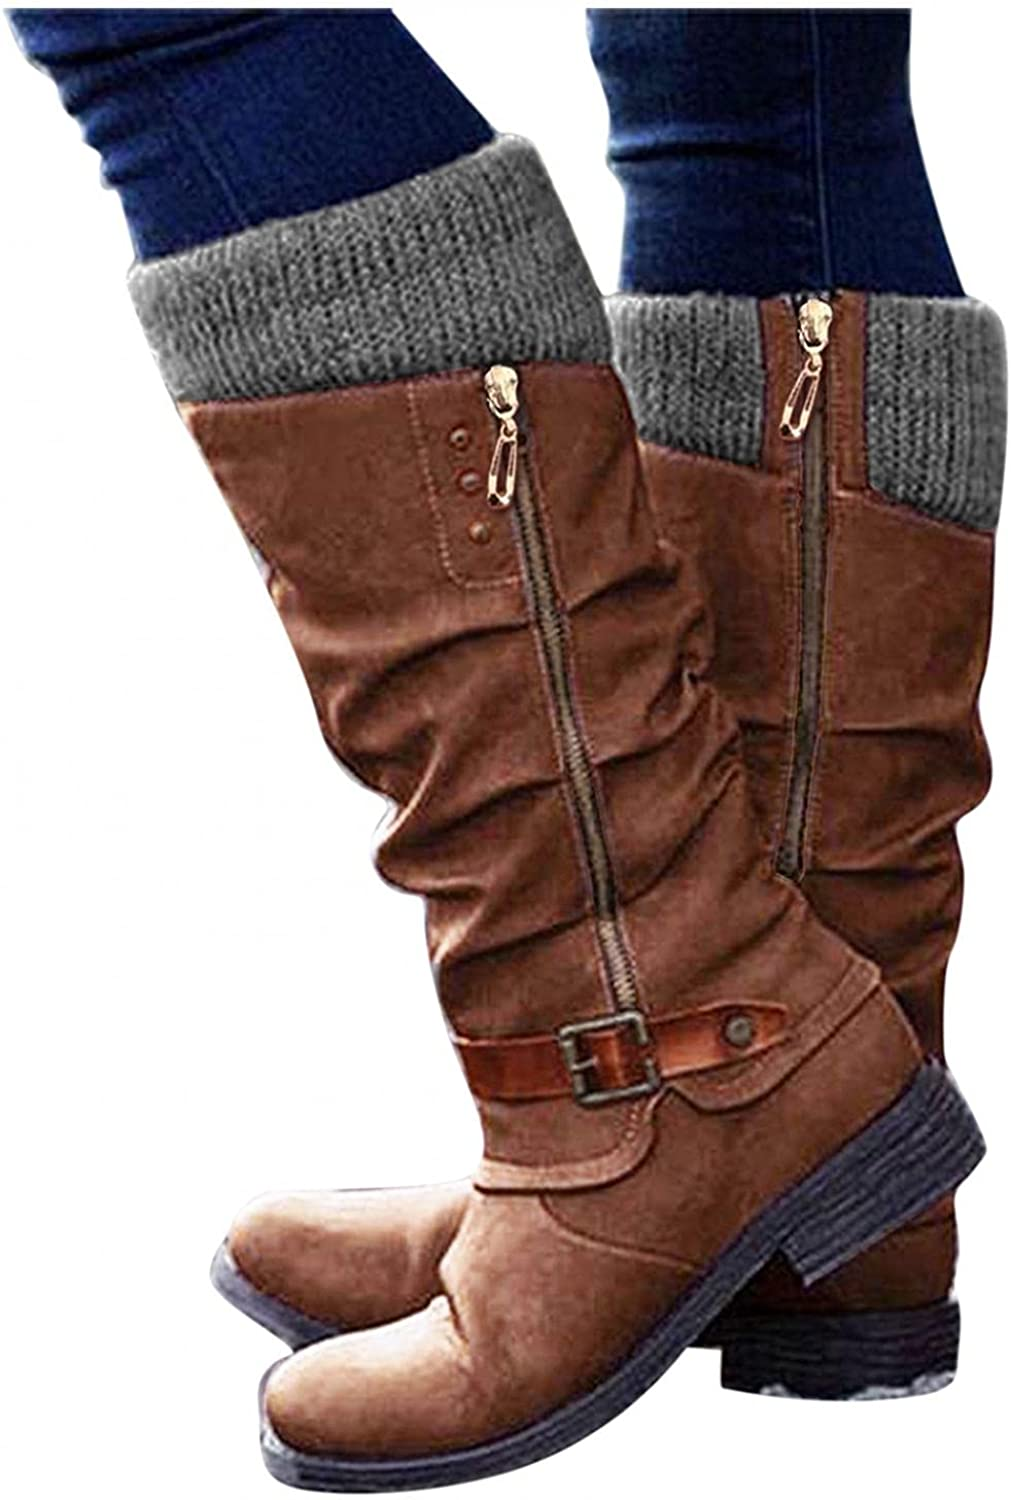 Zieglen Boots for Women, Womens Boots with Suede Wedge Knee High Booties Platform Boots Western Boots Womens Winter Boots